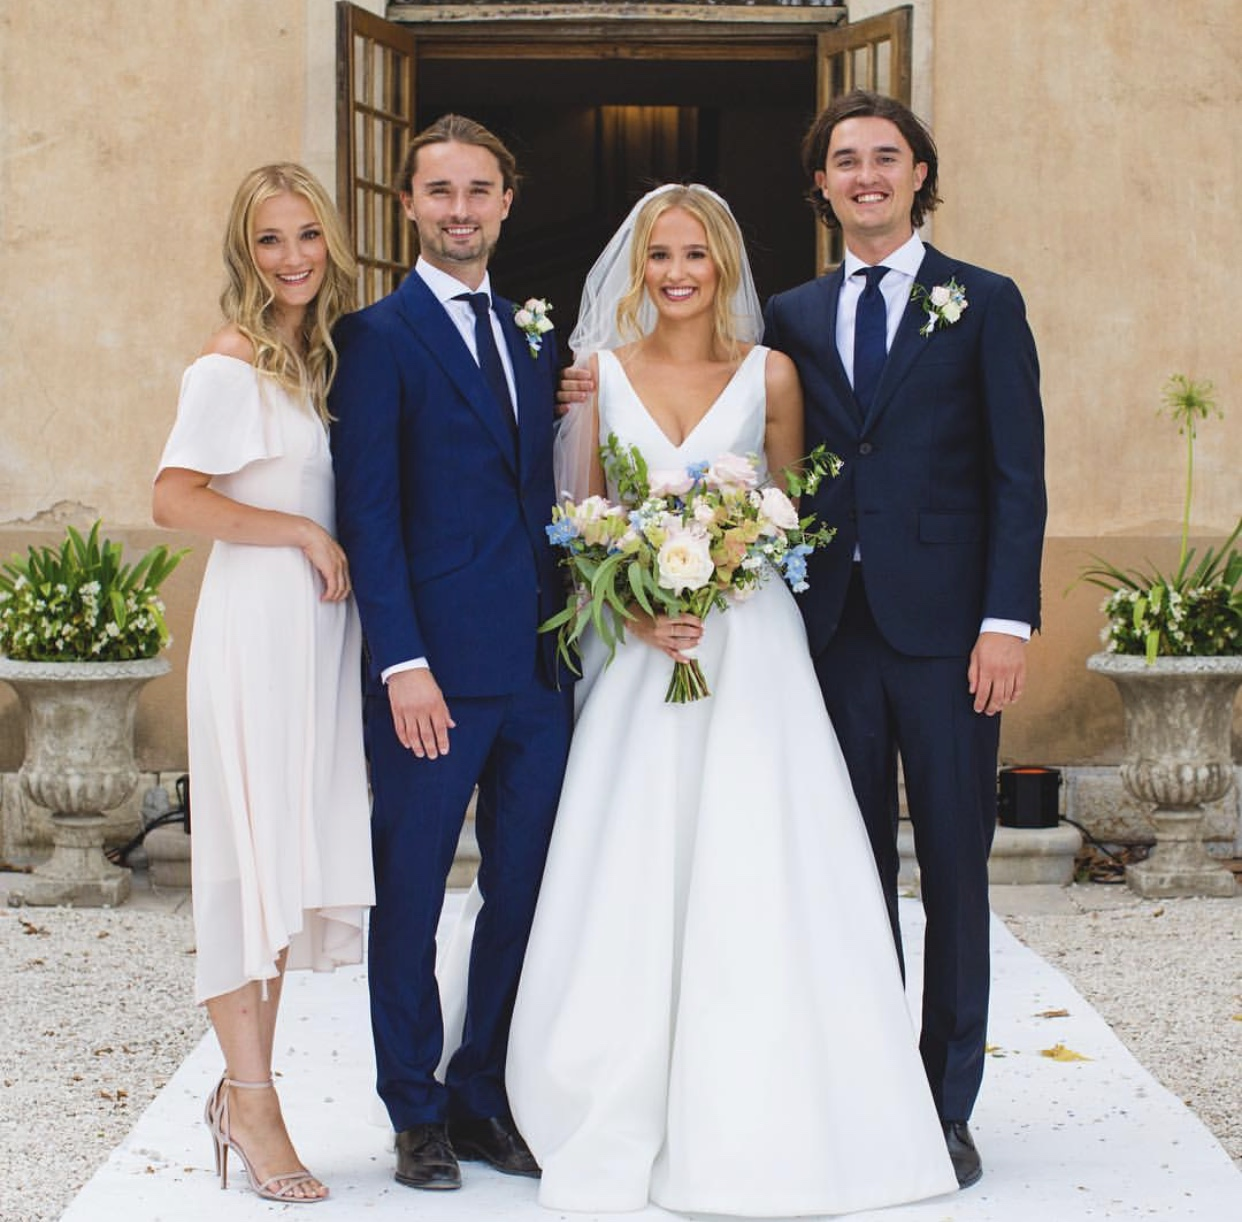 Lola Wedding Dress by bridal designer Suzanne Neville